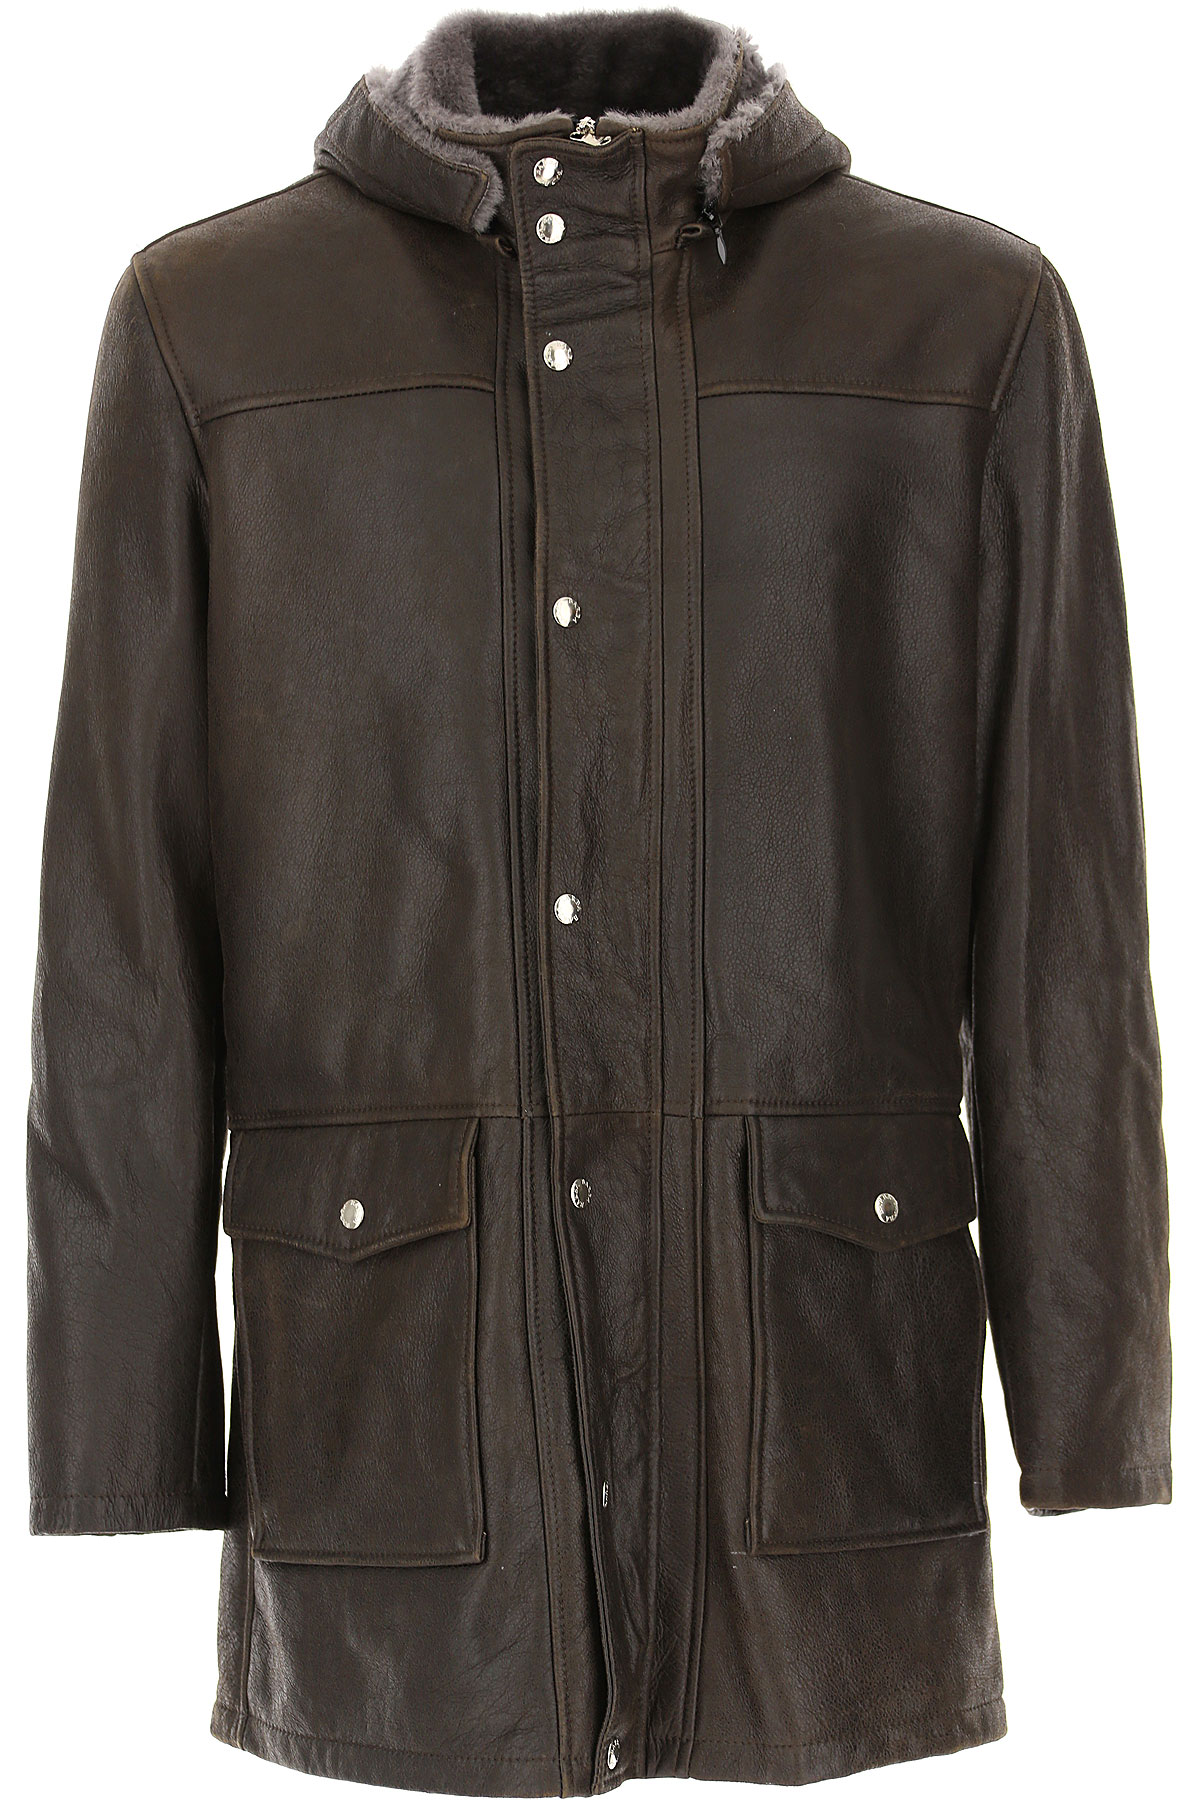 Barba Leather Jacket for Men On Sale, Brown, Leather, 2019, L M